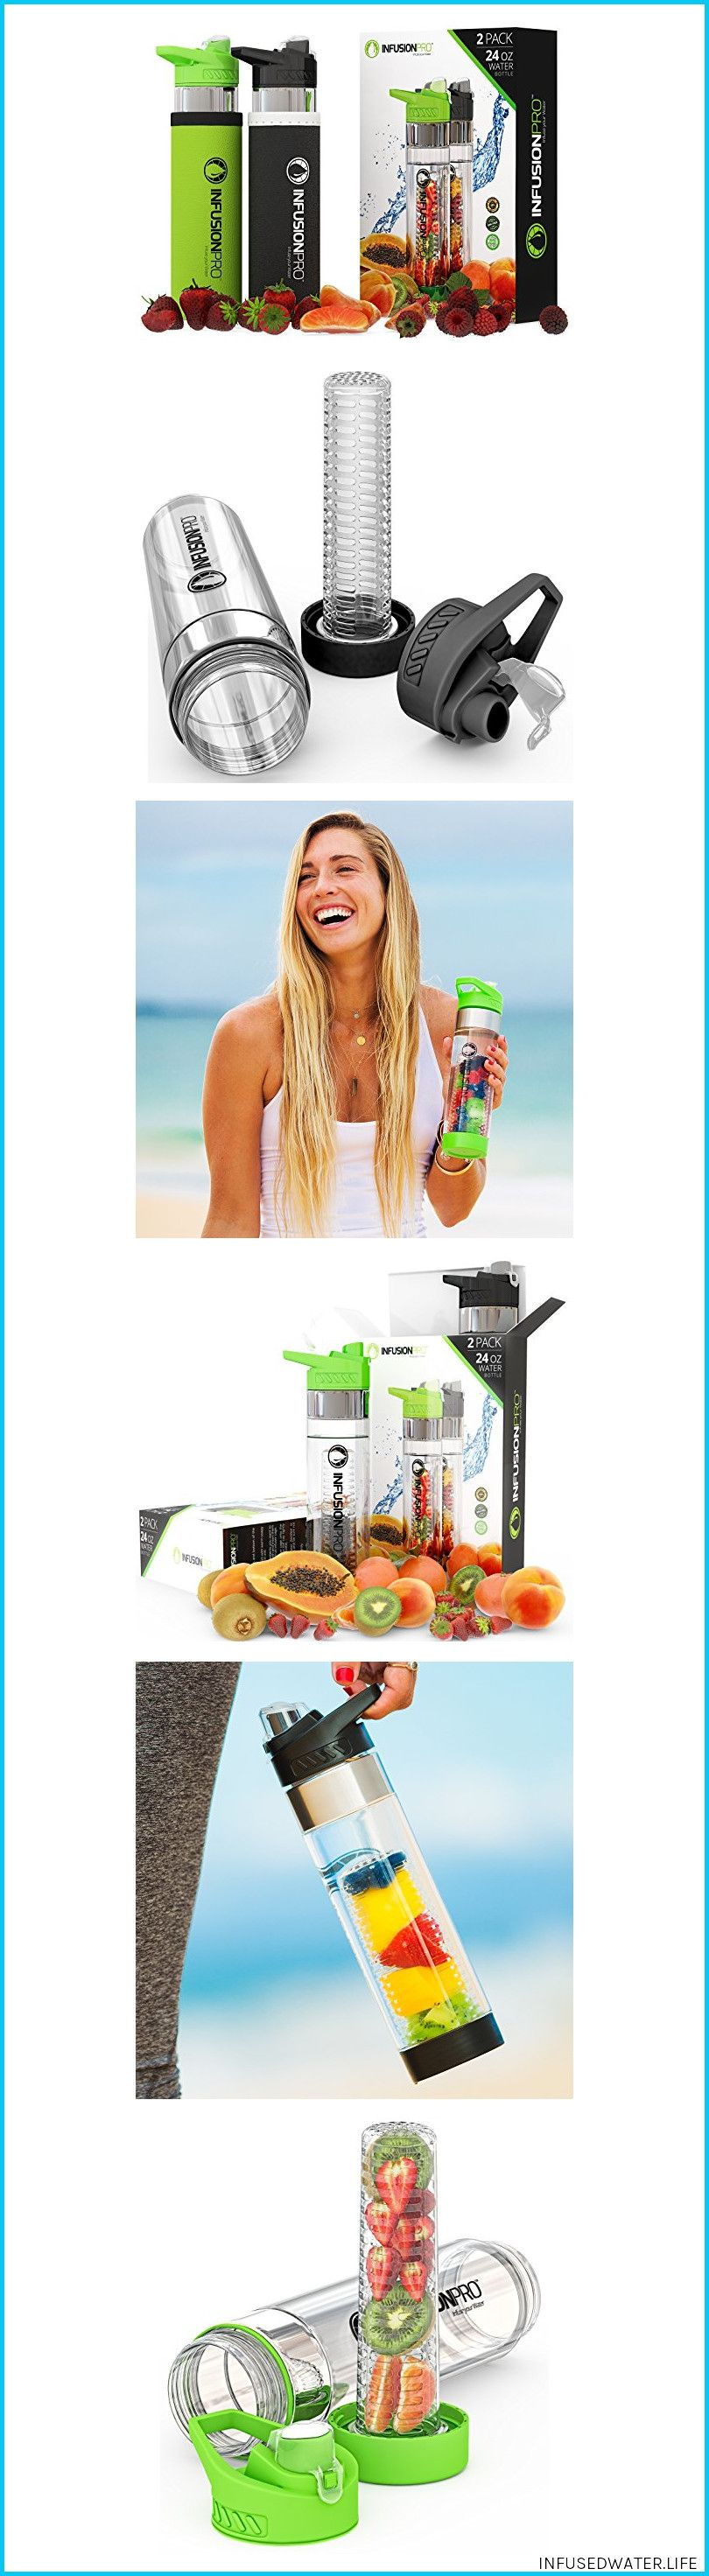 d1071007a3 Inclusive Inner Strainer/ Fi#detox Infusion Pro Premium Fruit Infused Water  Bottle (2 Pack or 1 Pack) Insulating Sleeves and Flavored Water Recipe eBook  ...